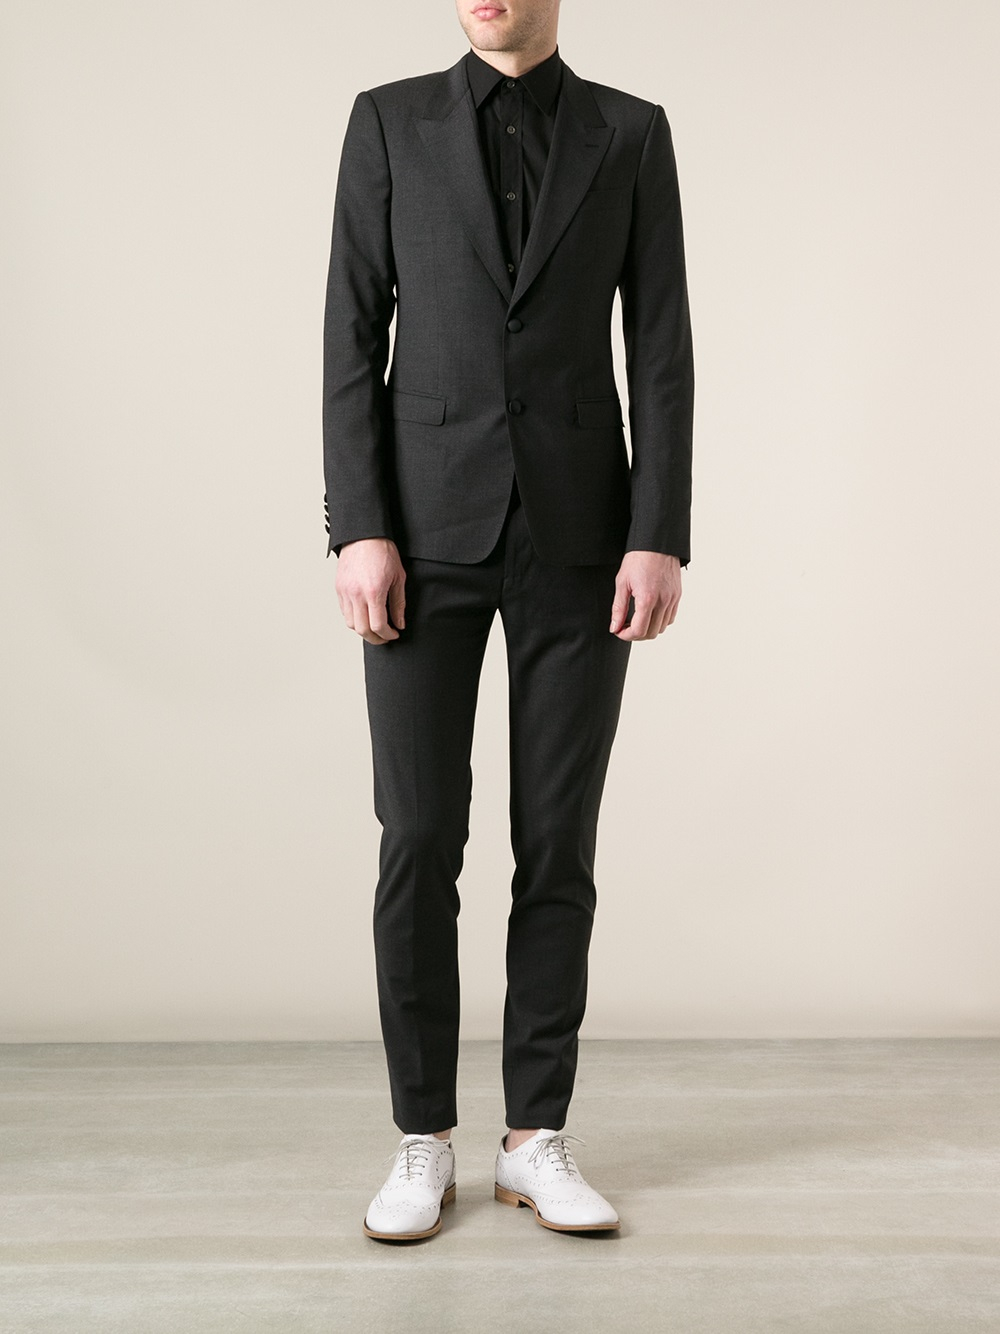 Dolce Amp Gabbana Jacket And Trousers Suit In Gray For Men